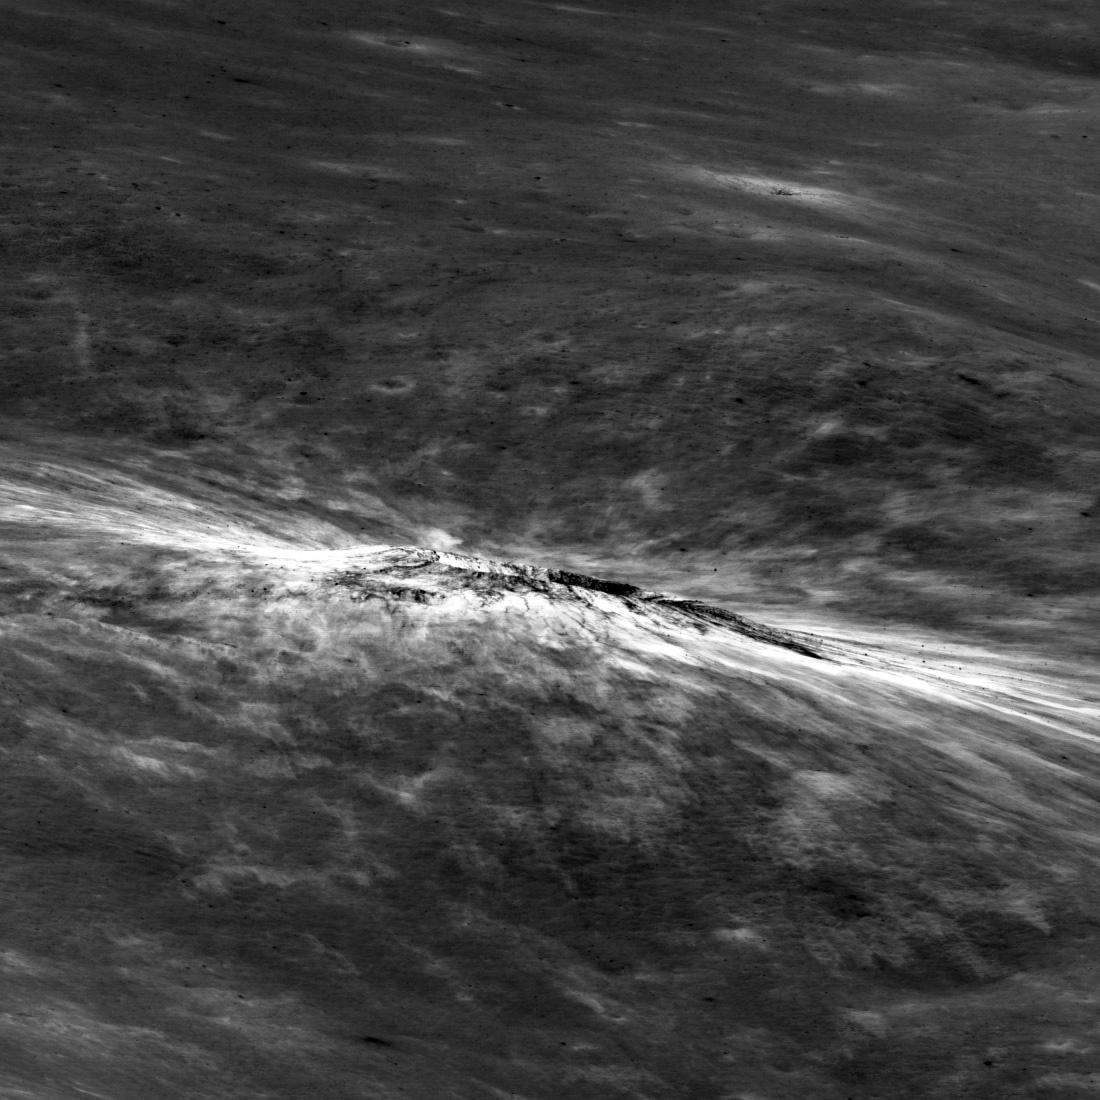 crater seen almost edge on, on a gray plain with bright streaks